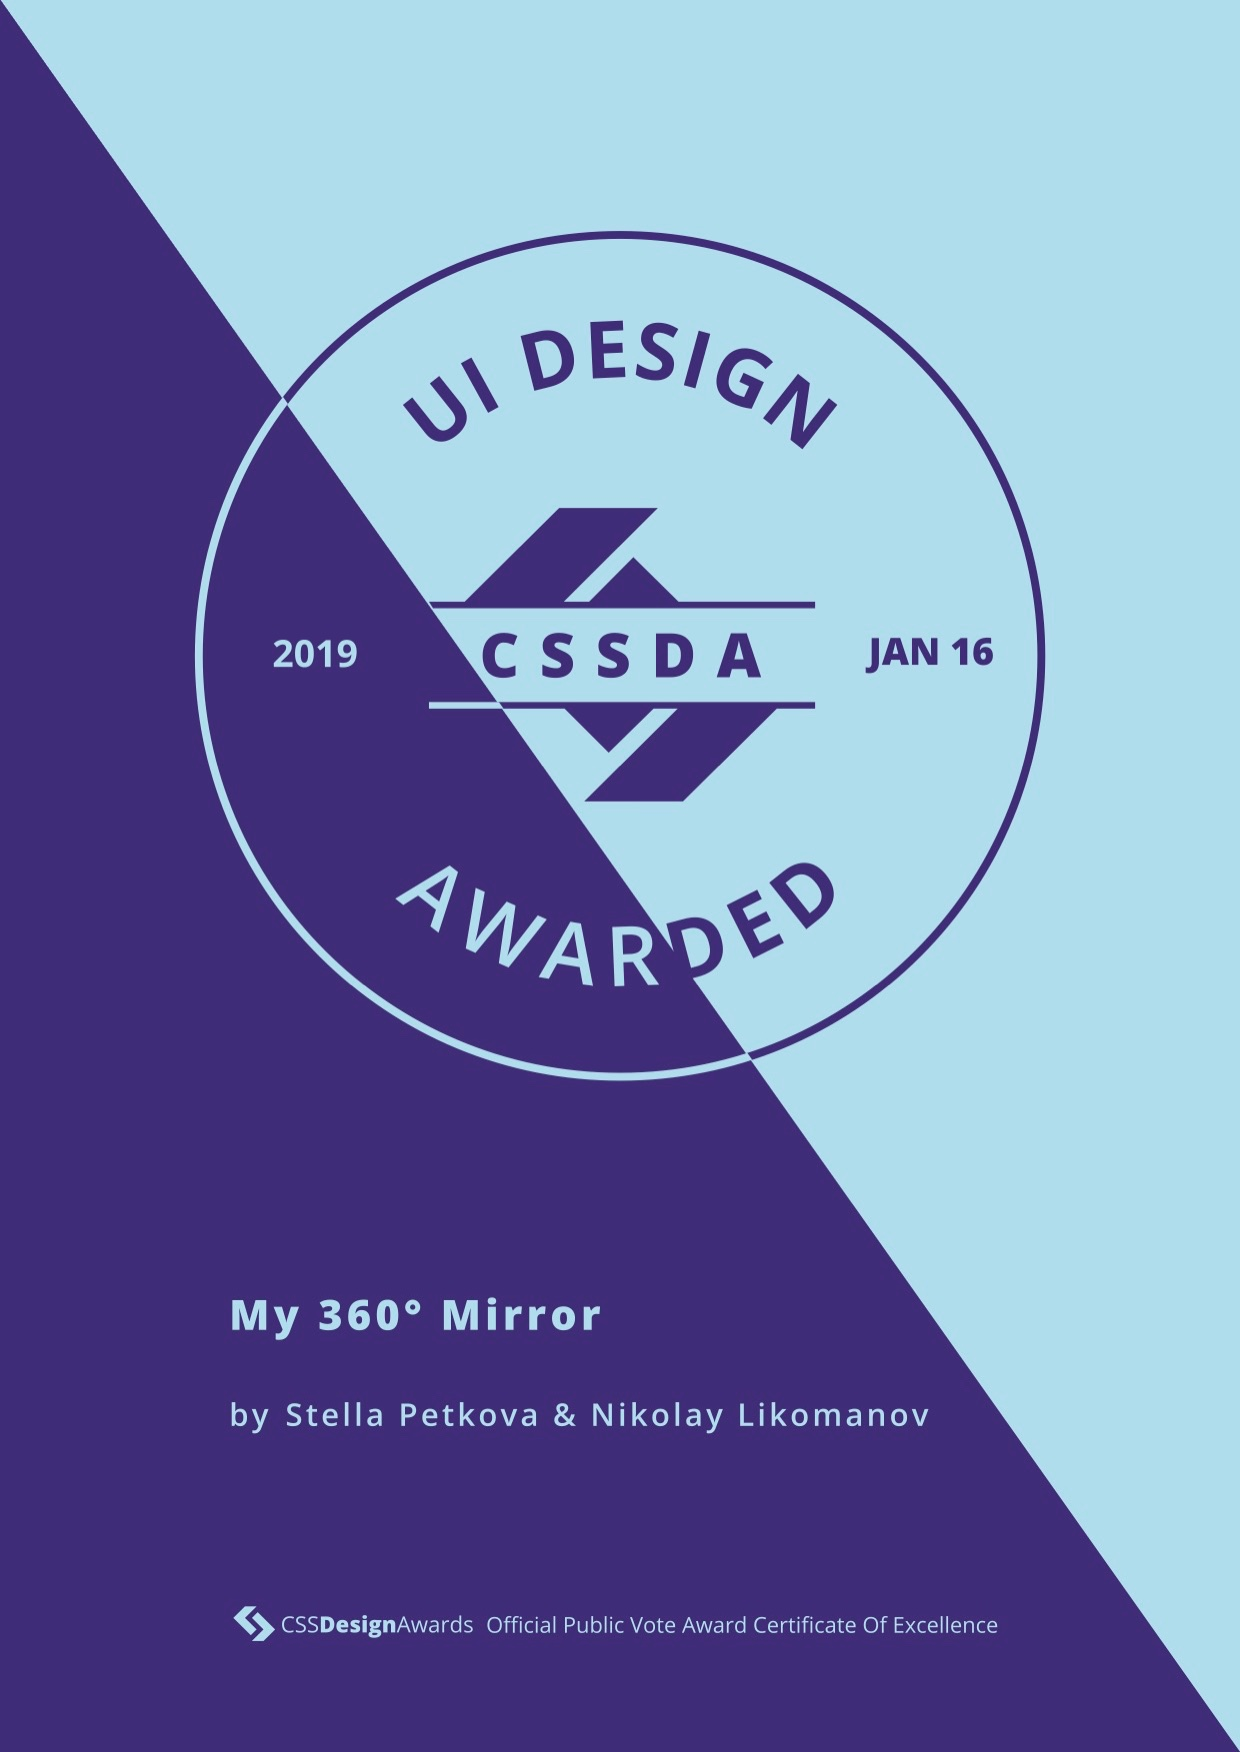 CSS Design UI Innovation Certificate - My 360 Mirror